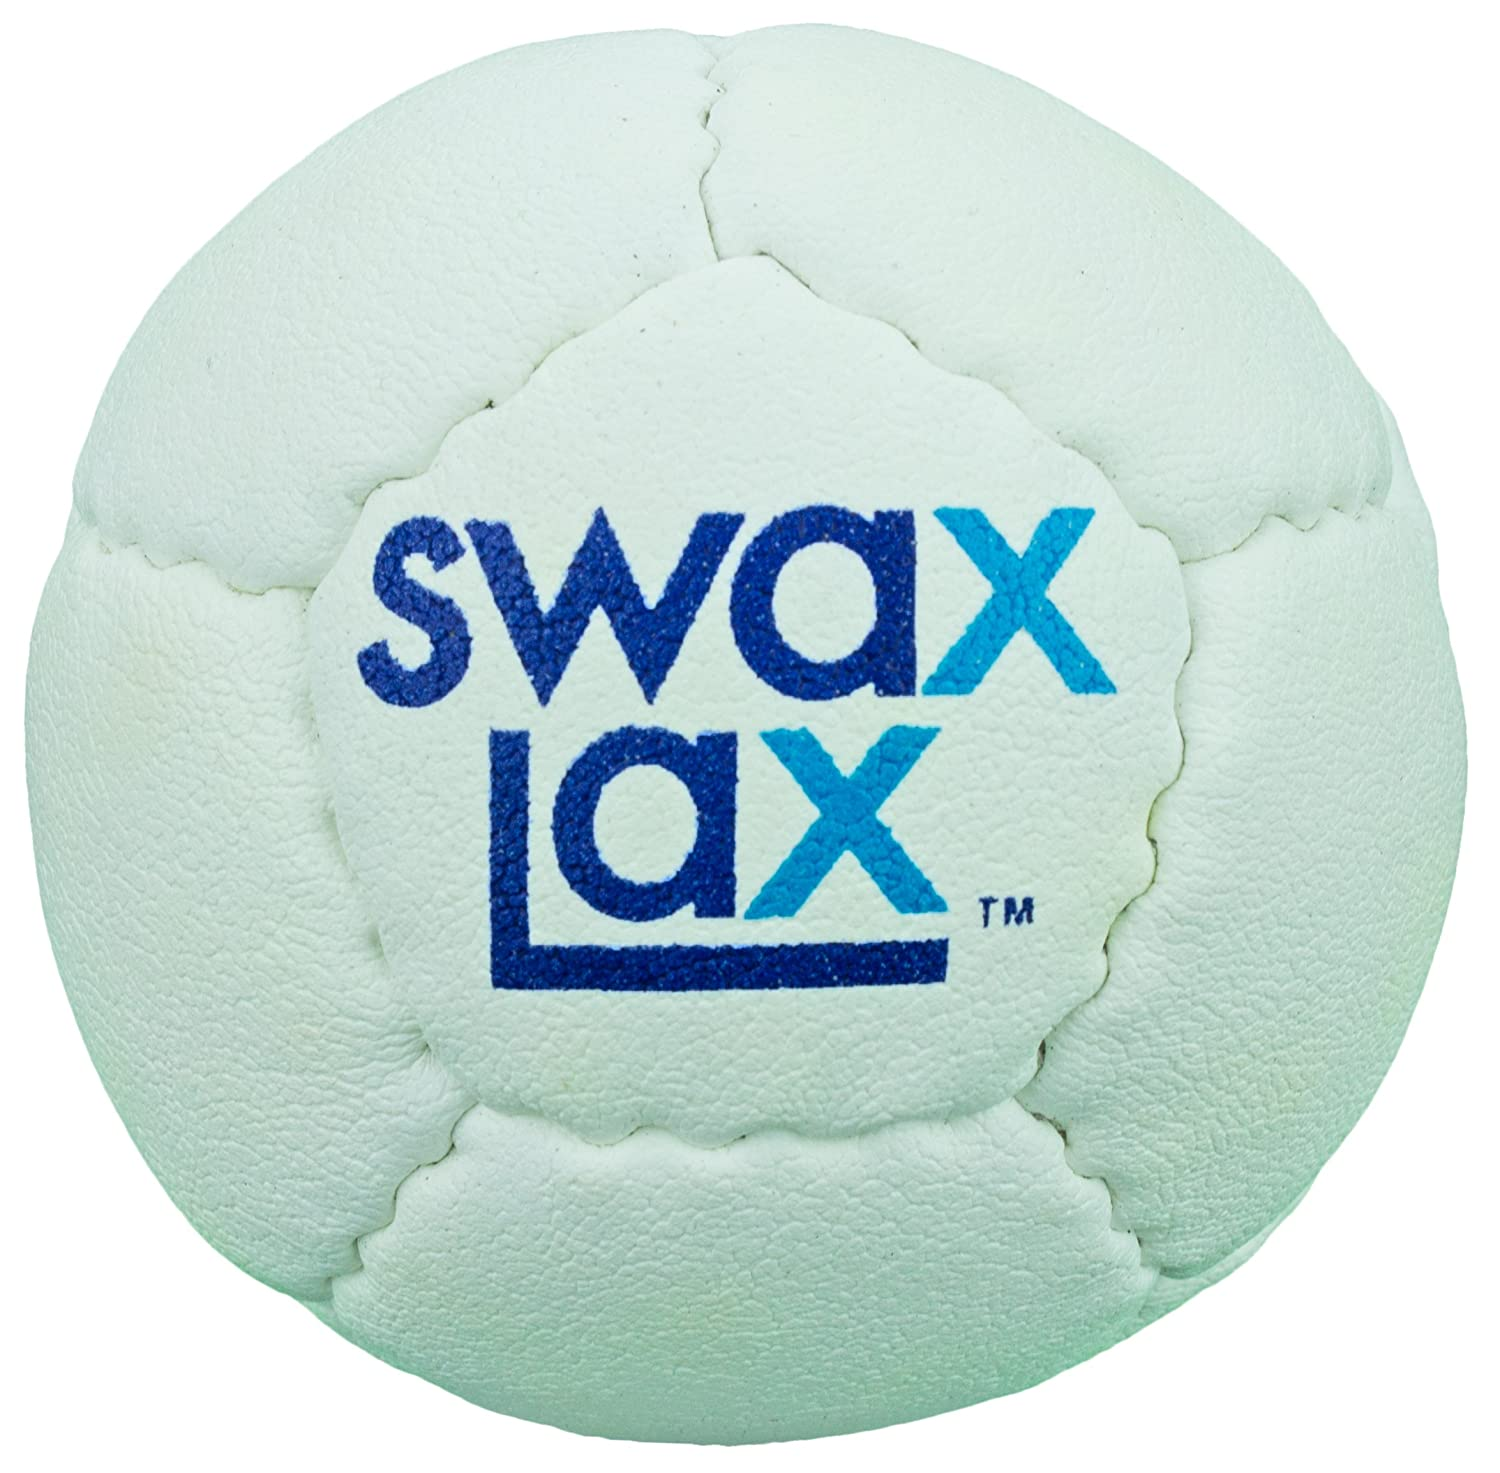 Same Size and Weight as Regulation Lacrosse Ball but Soft SWAX LAX Lacrosse Training Ball Less Bounce Practice Ball No Rebounds